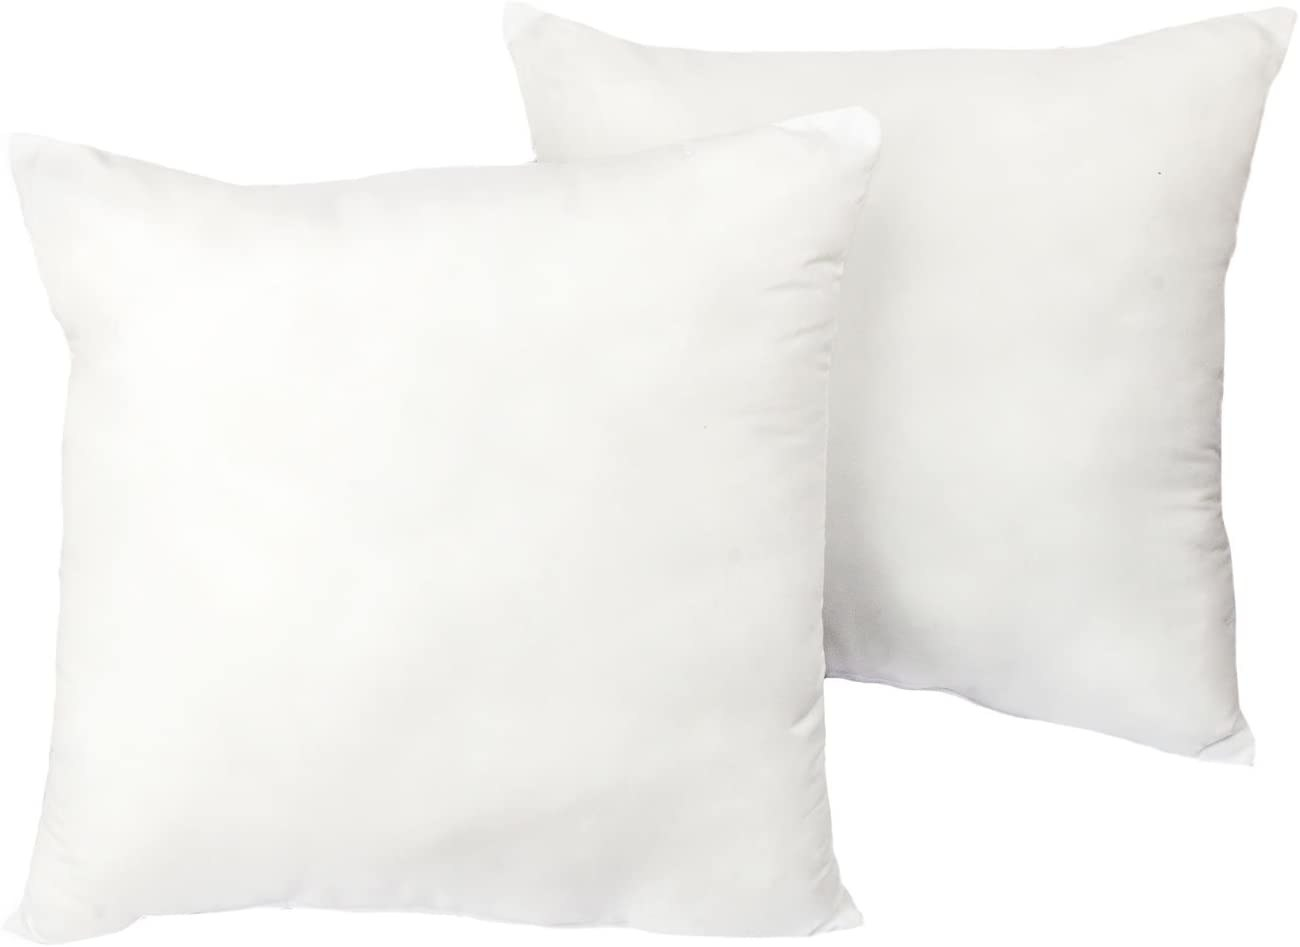 two square pillows